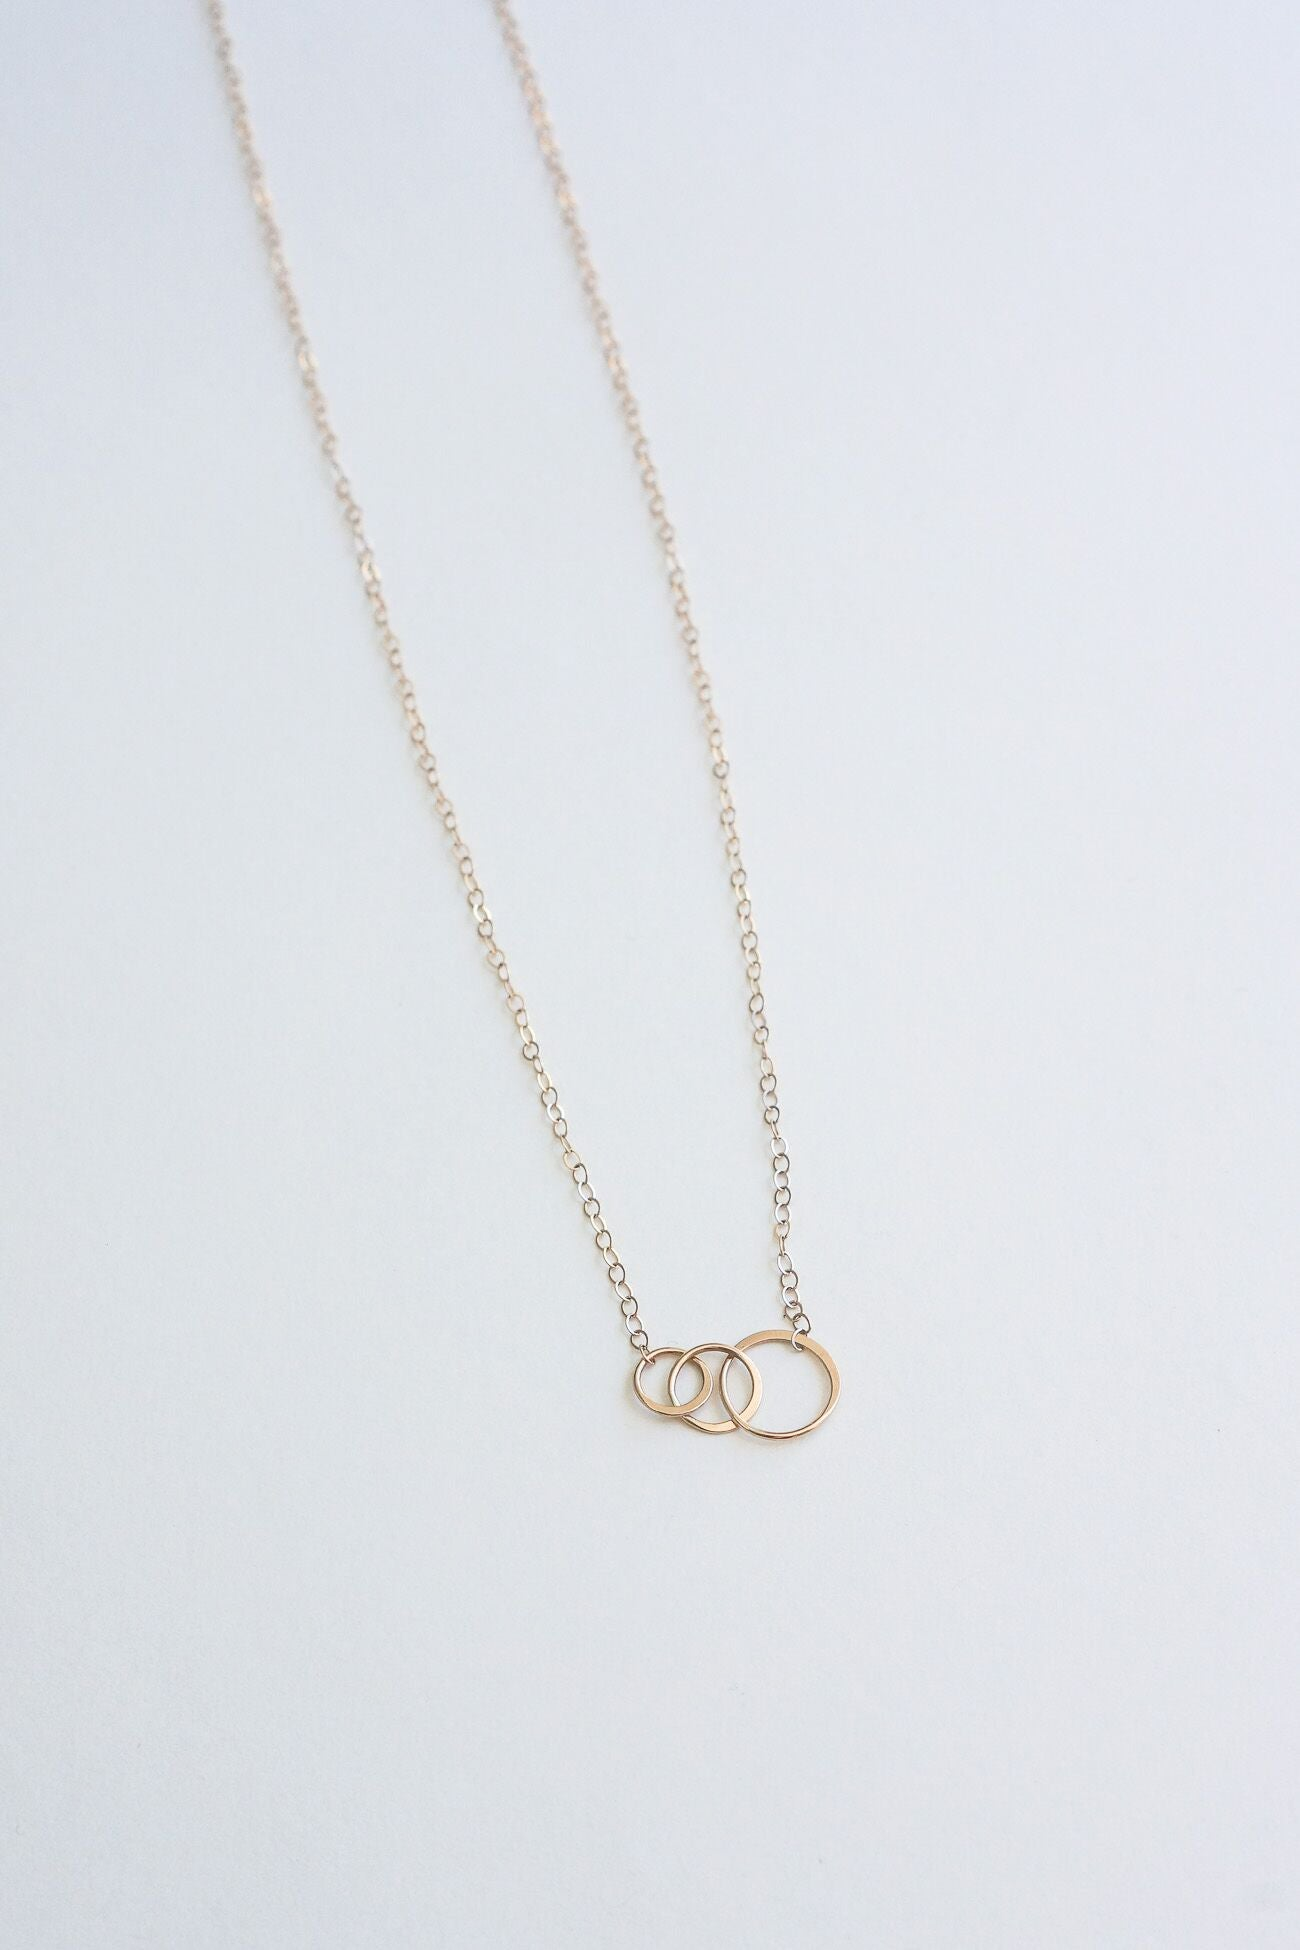 Melissa Joy Manning 14K Gold Necklace with Three Graduated Hammered Rings